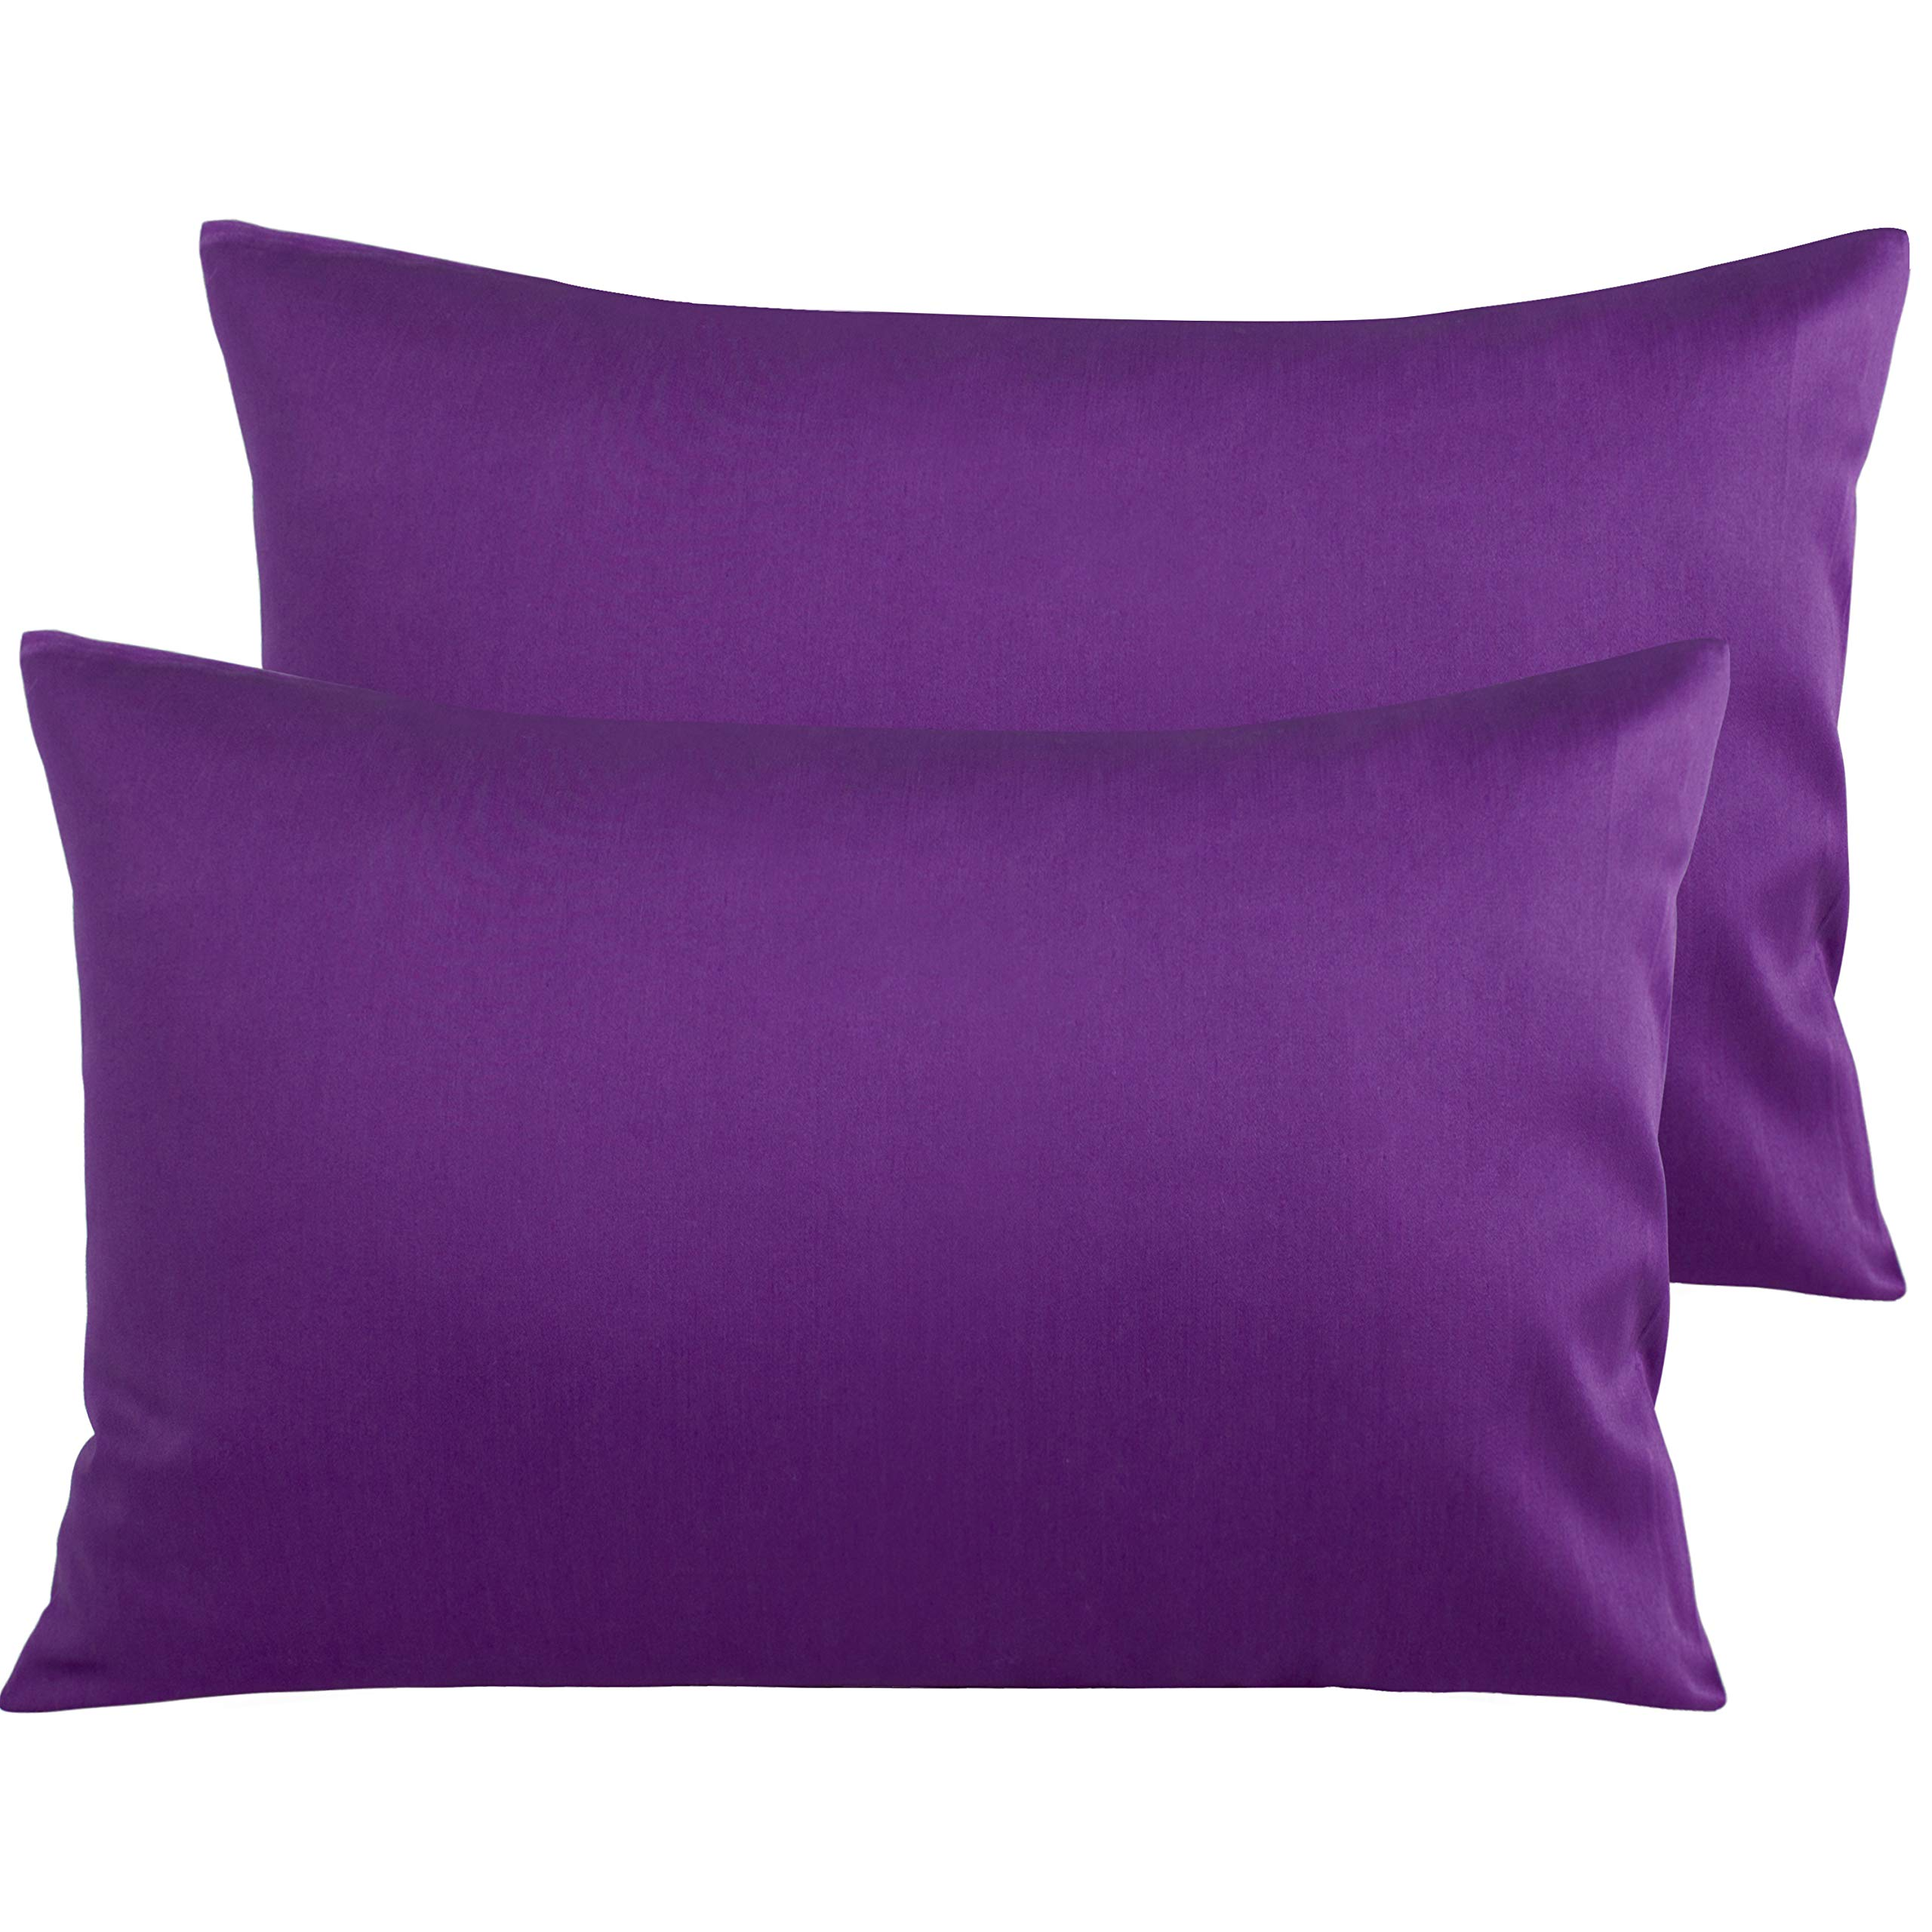 NTBAY 500 Thread Count Cotton Queen Pillowcases, Super Soft and Breathable Envelope Closure Pillow Cases, 20 x 30 Inches, Purple